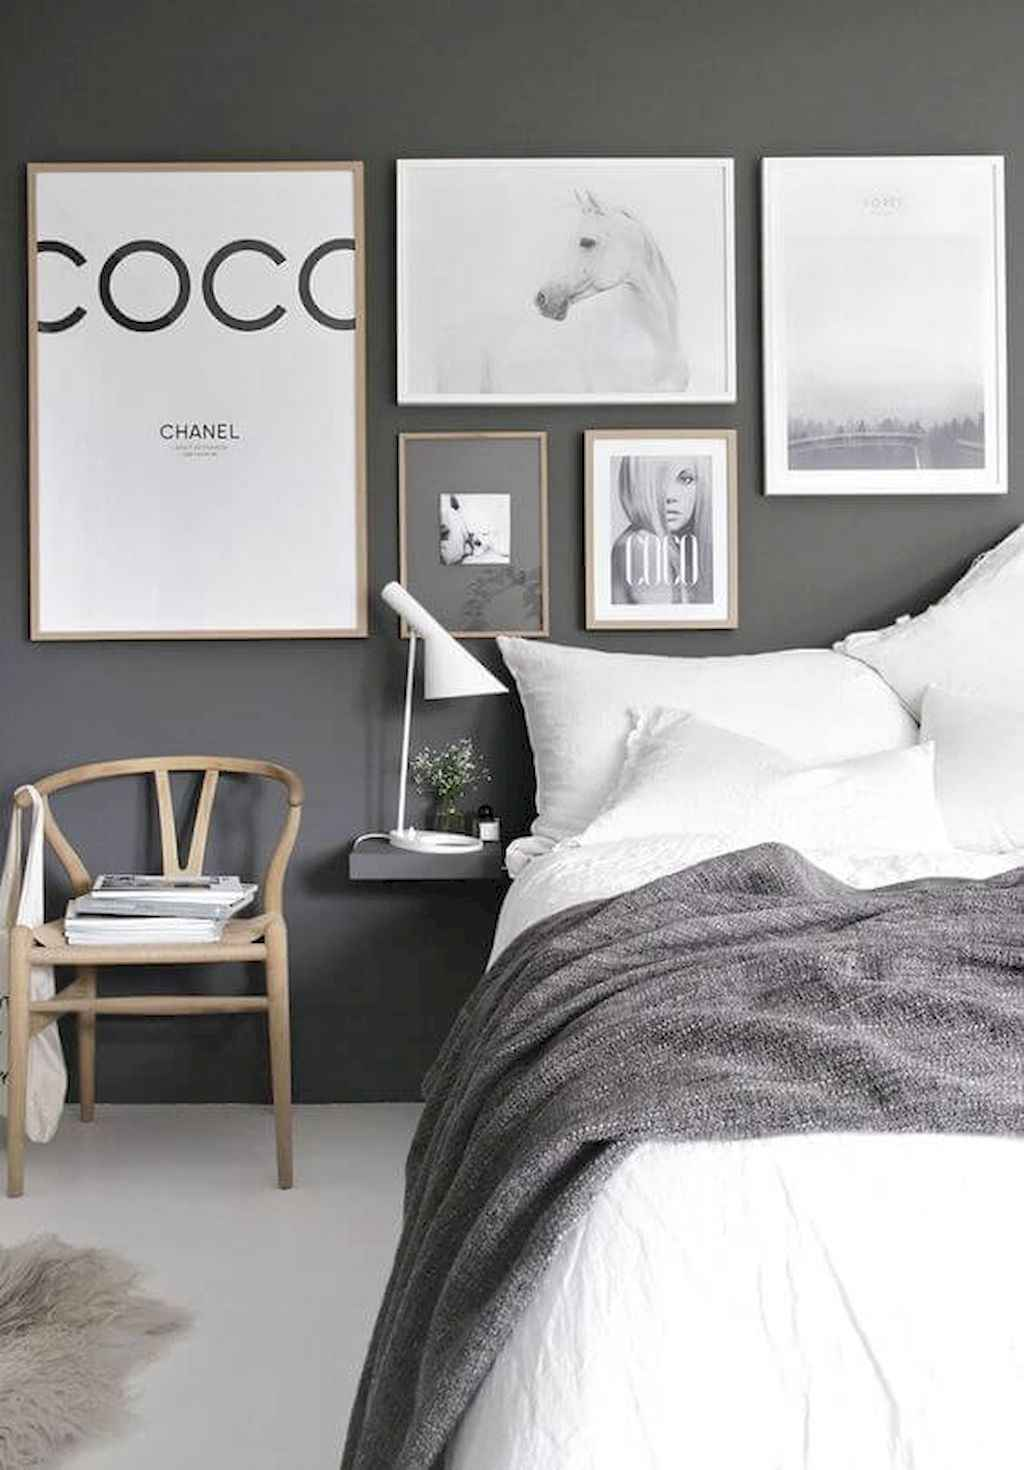 Simply bedroom decoration ideas (55)